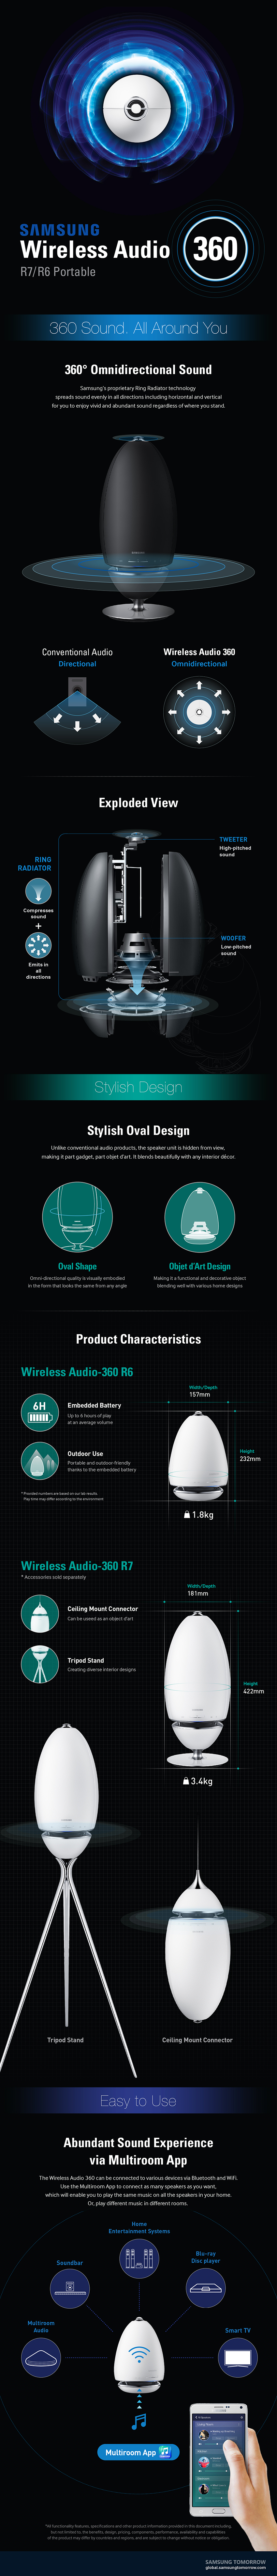 [Infographic] The Stylish and Powerful Wireless Audio-360